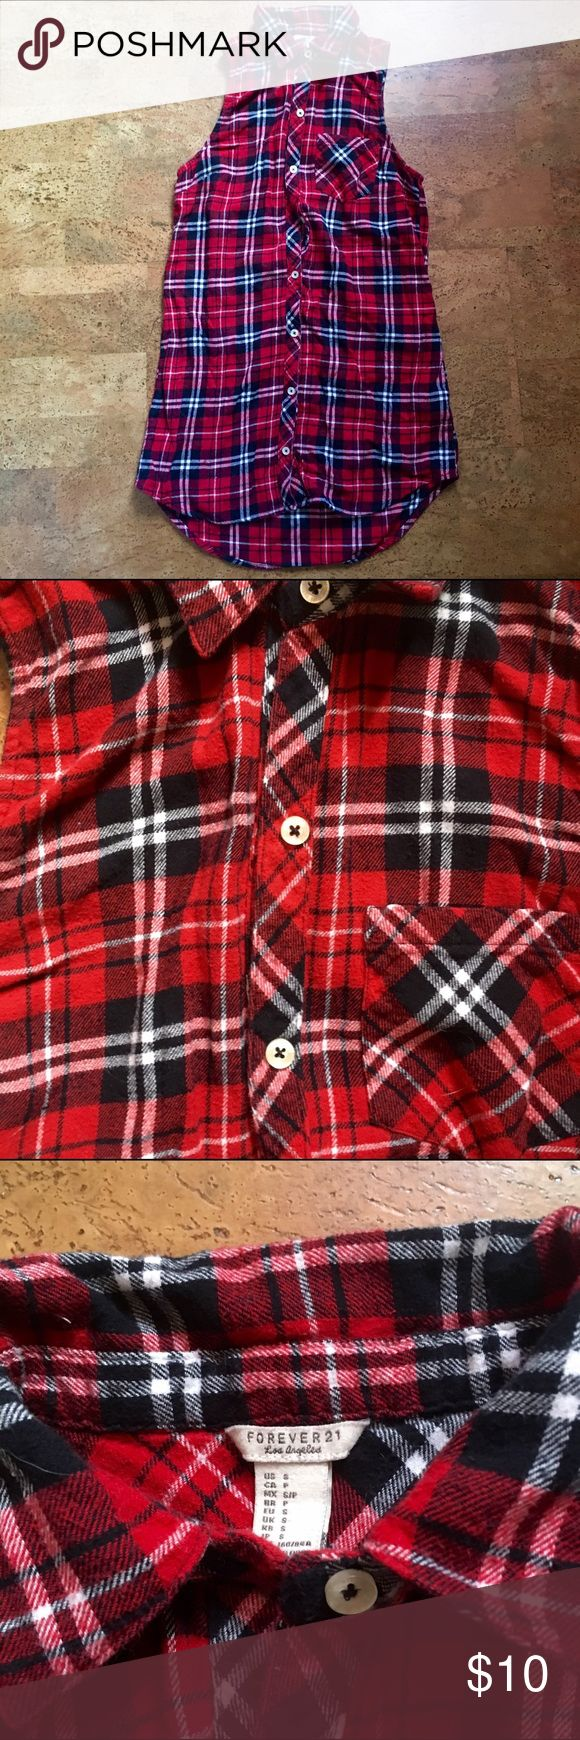 No shoulder long flannel shirt Can be worn as a dress or shirt depending on height. Super comfortable and an easy outfit. Size small. Condition is nearly perfect. Forever 21 Tops Button Down Shirts